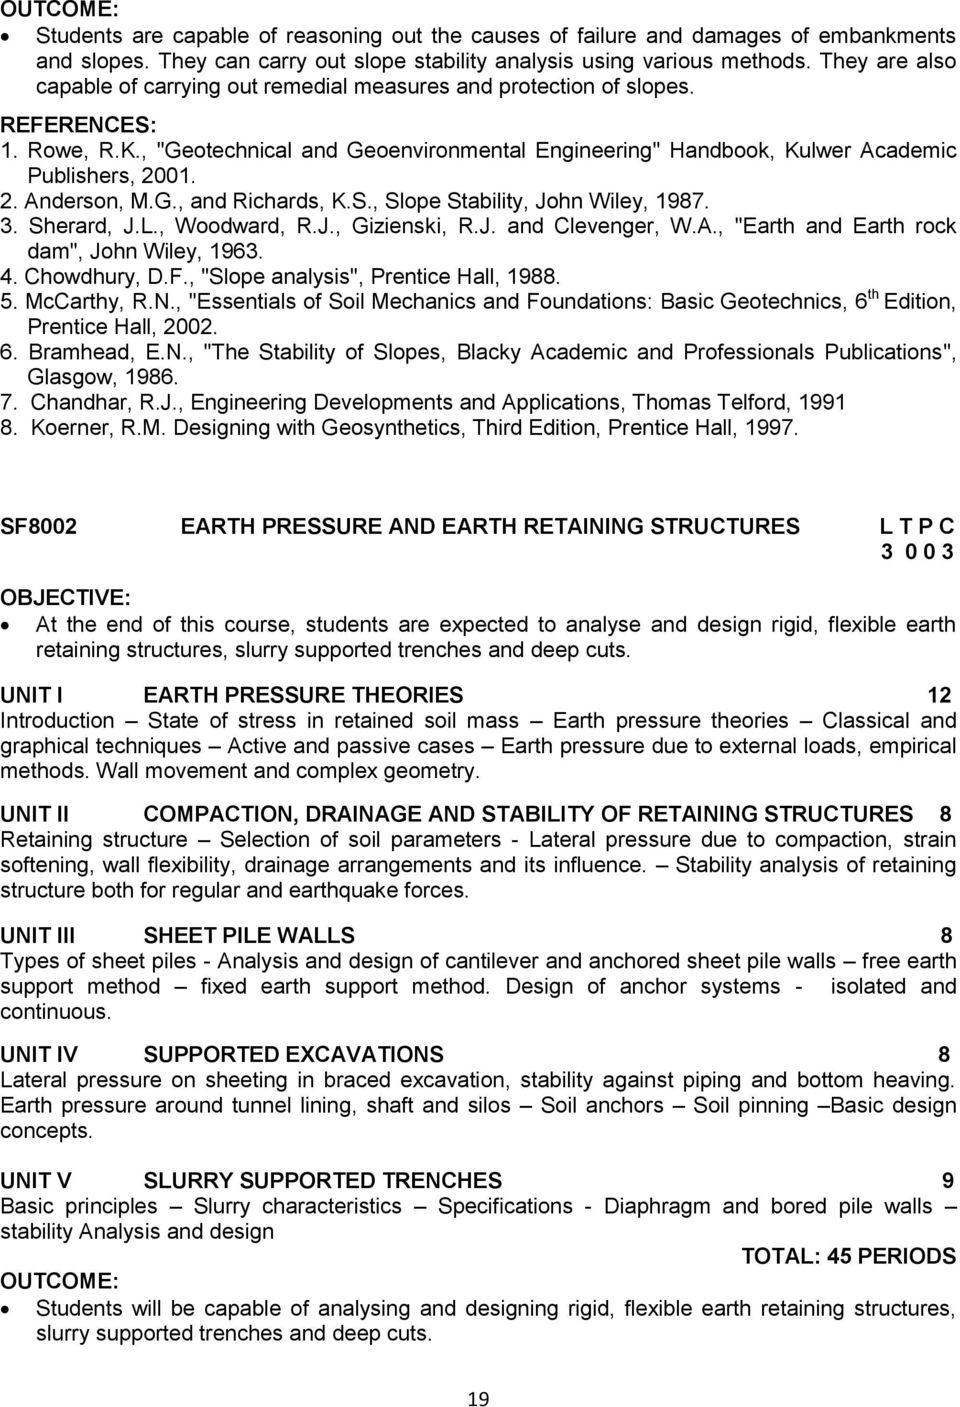 m e soil mechanics and foundation engineering programme pdf rh docplayer net